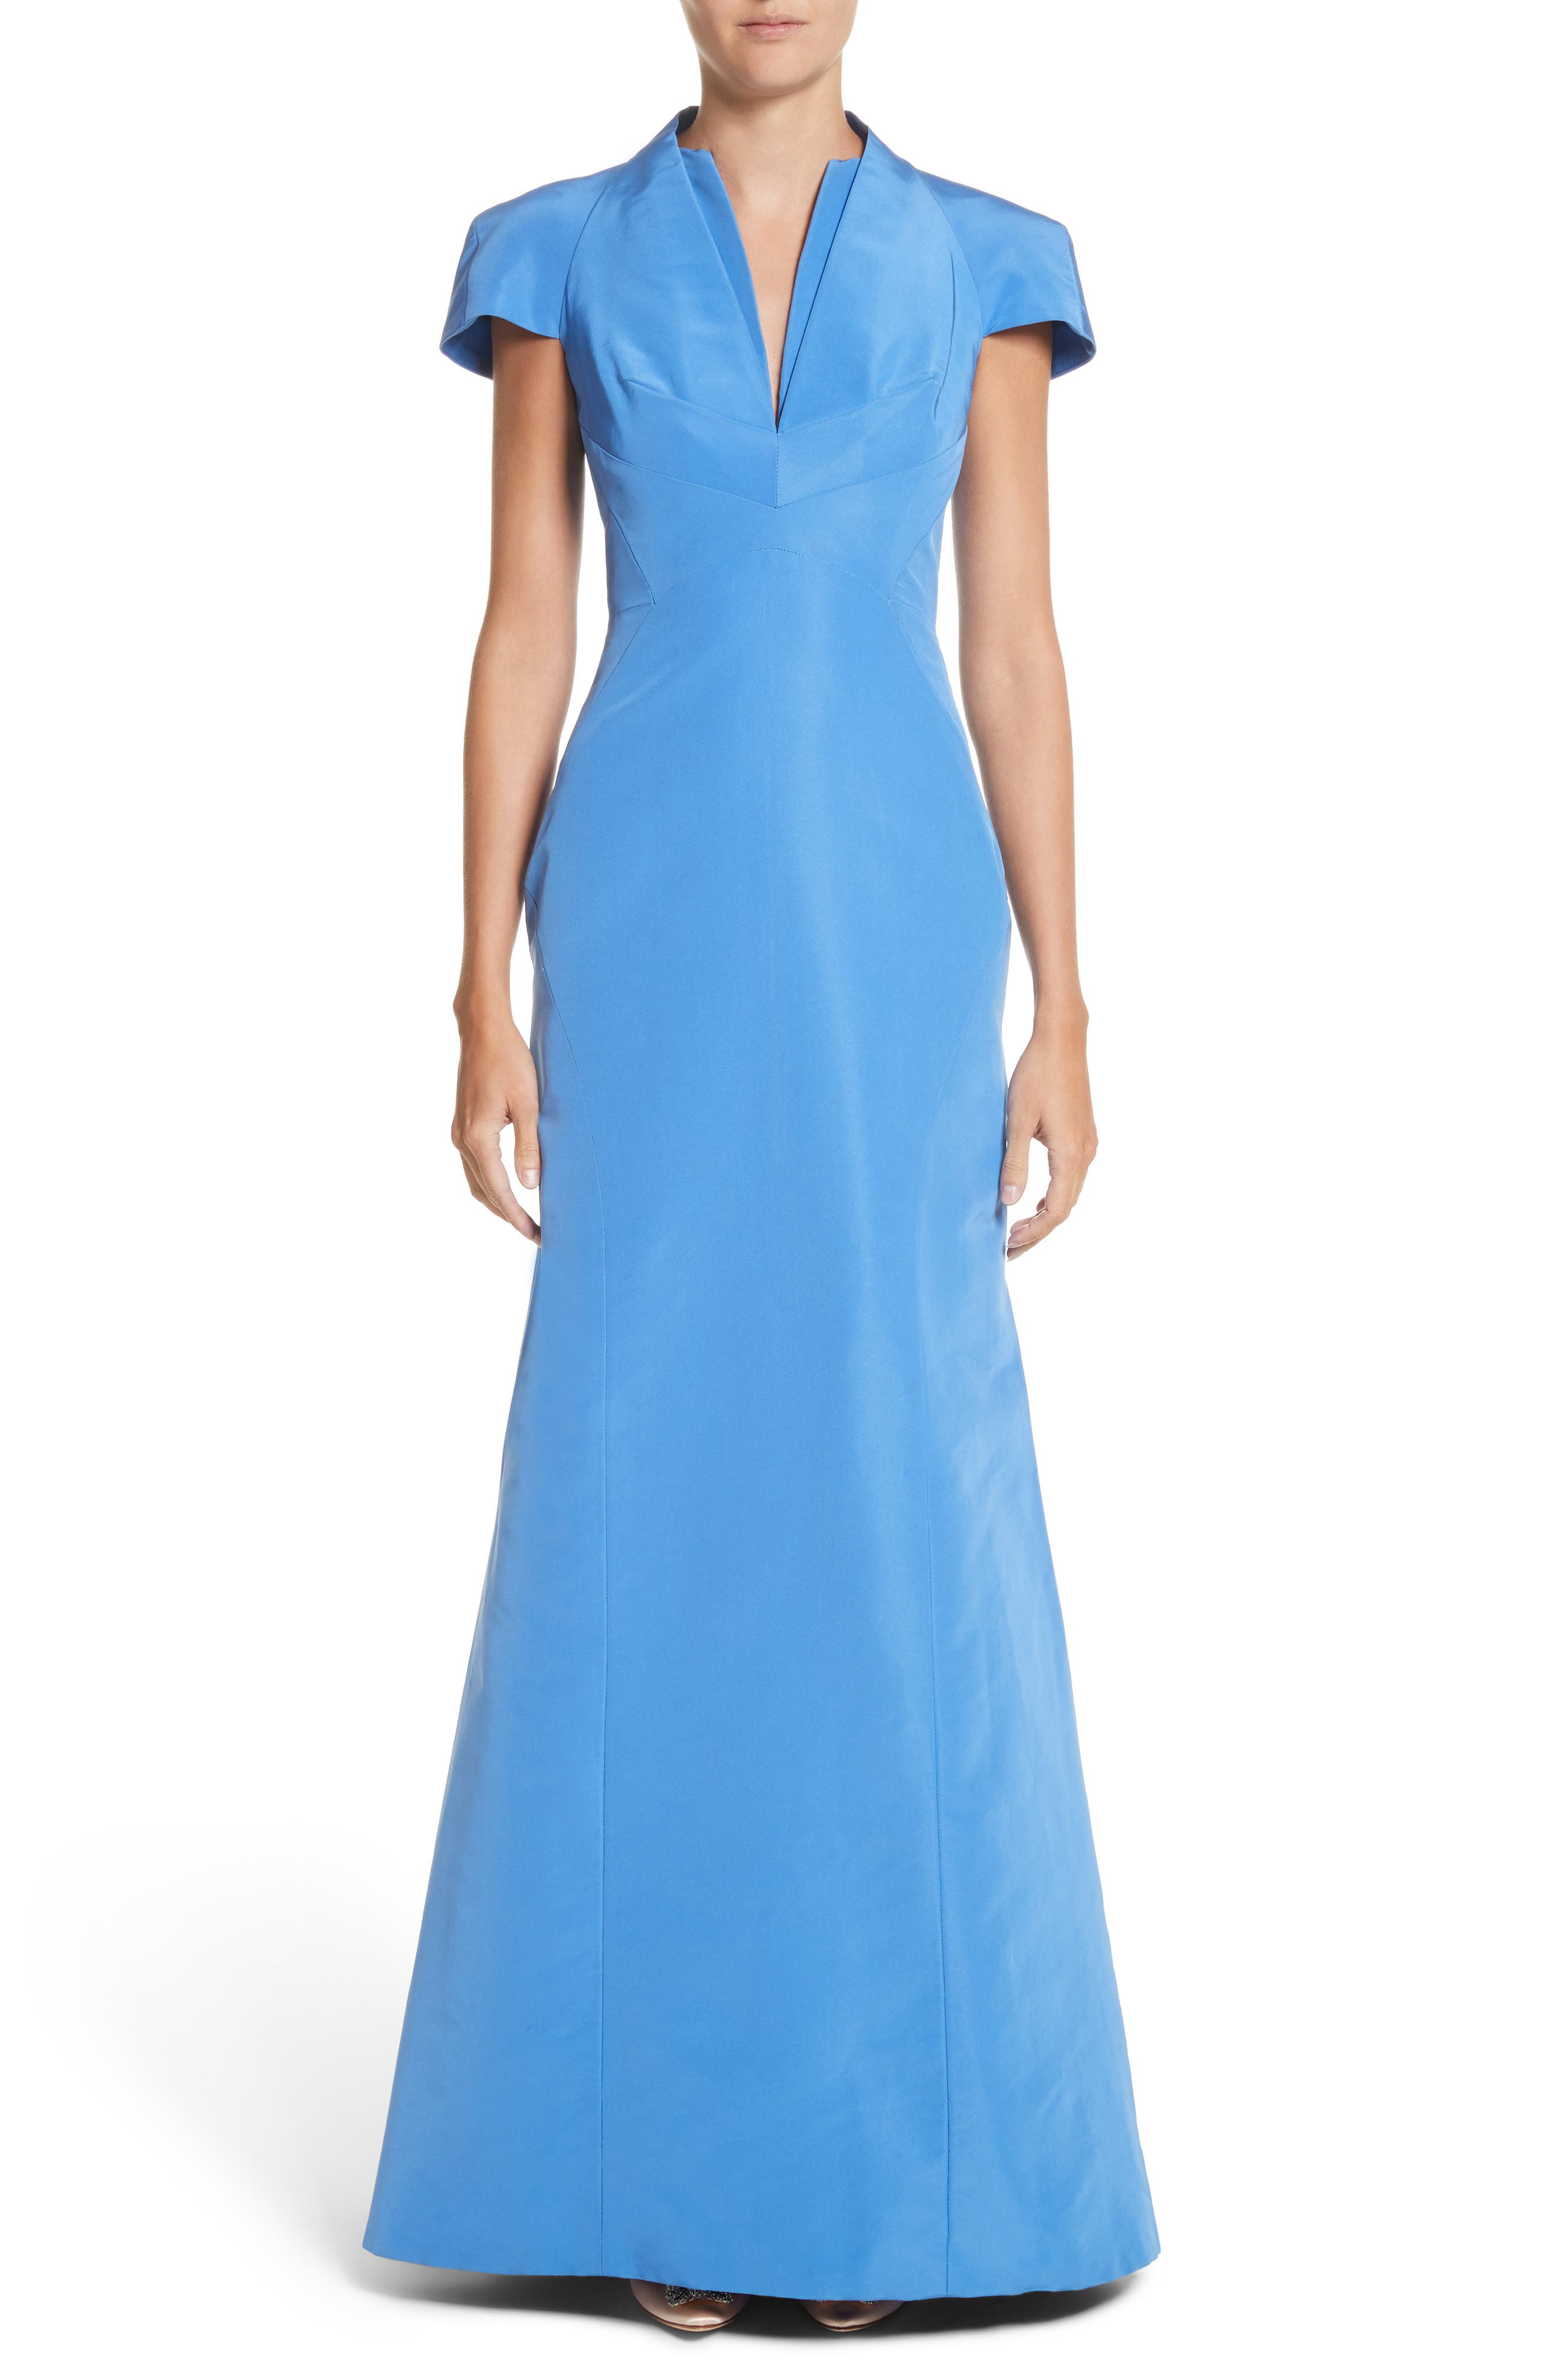 Main Image - Zac Posen Silk Faille Short Sleeve Mermaid Gown